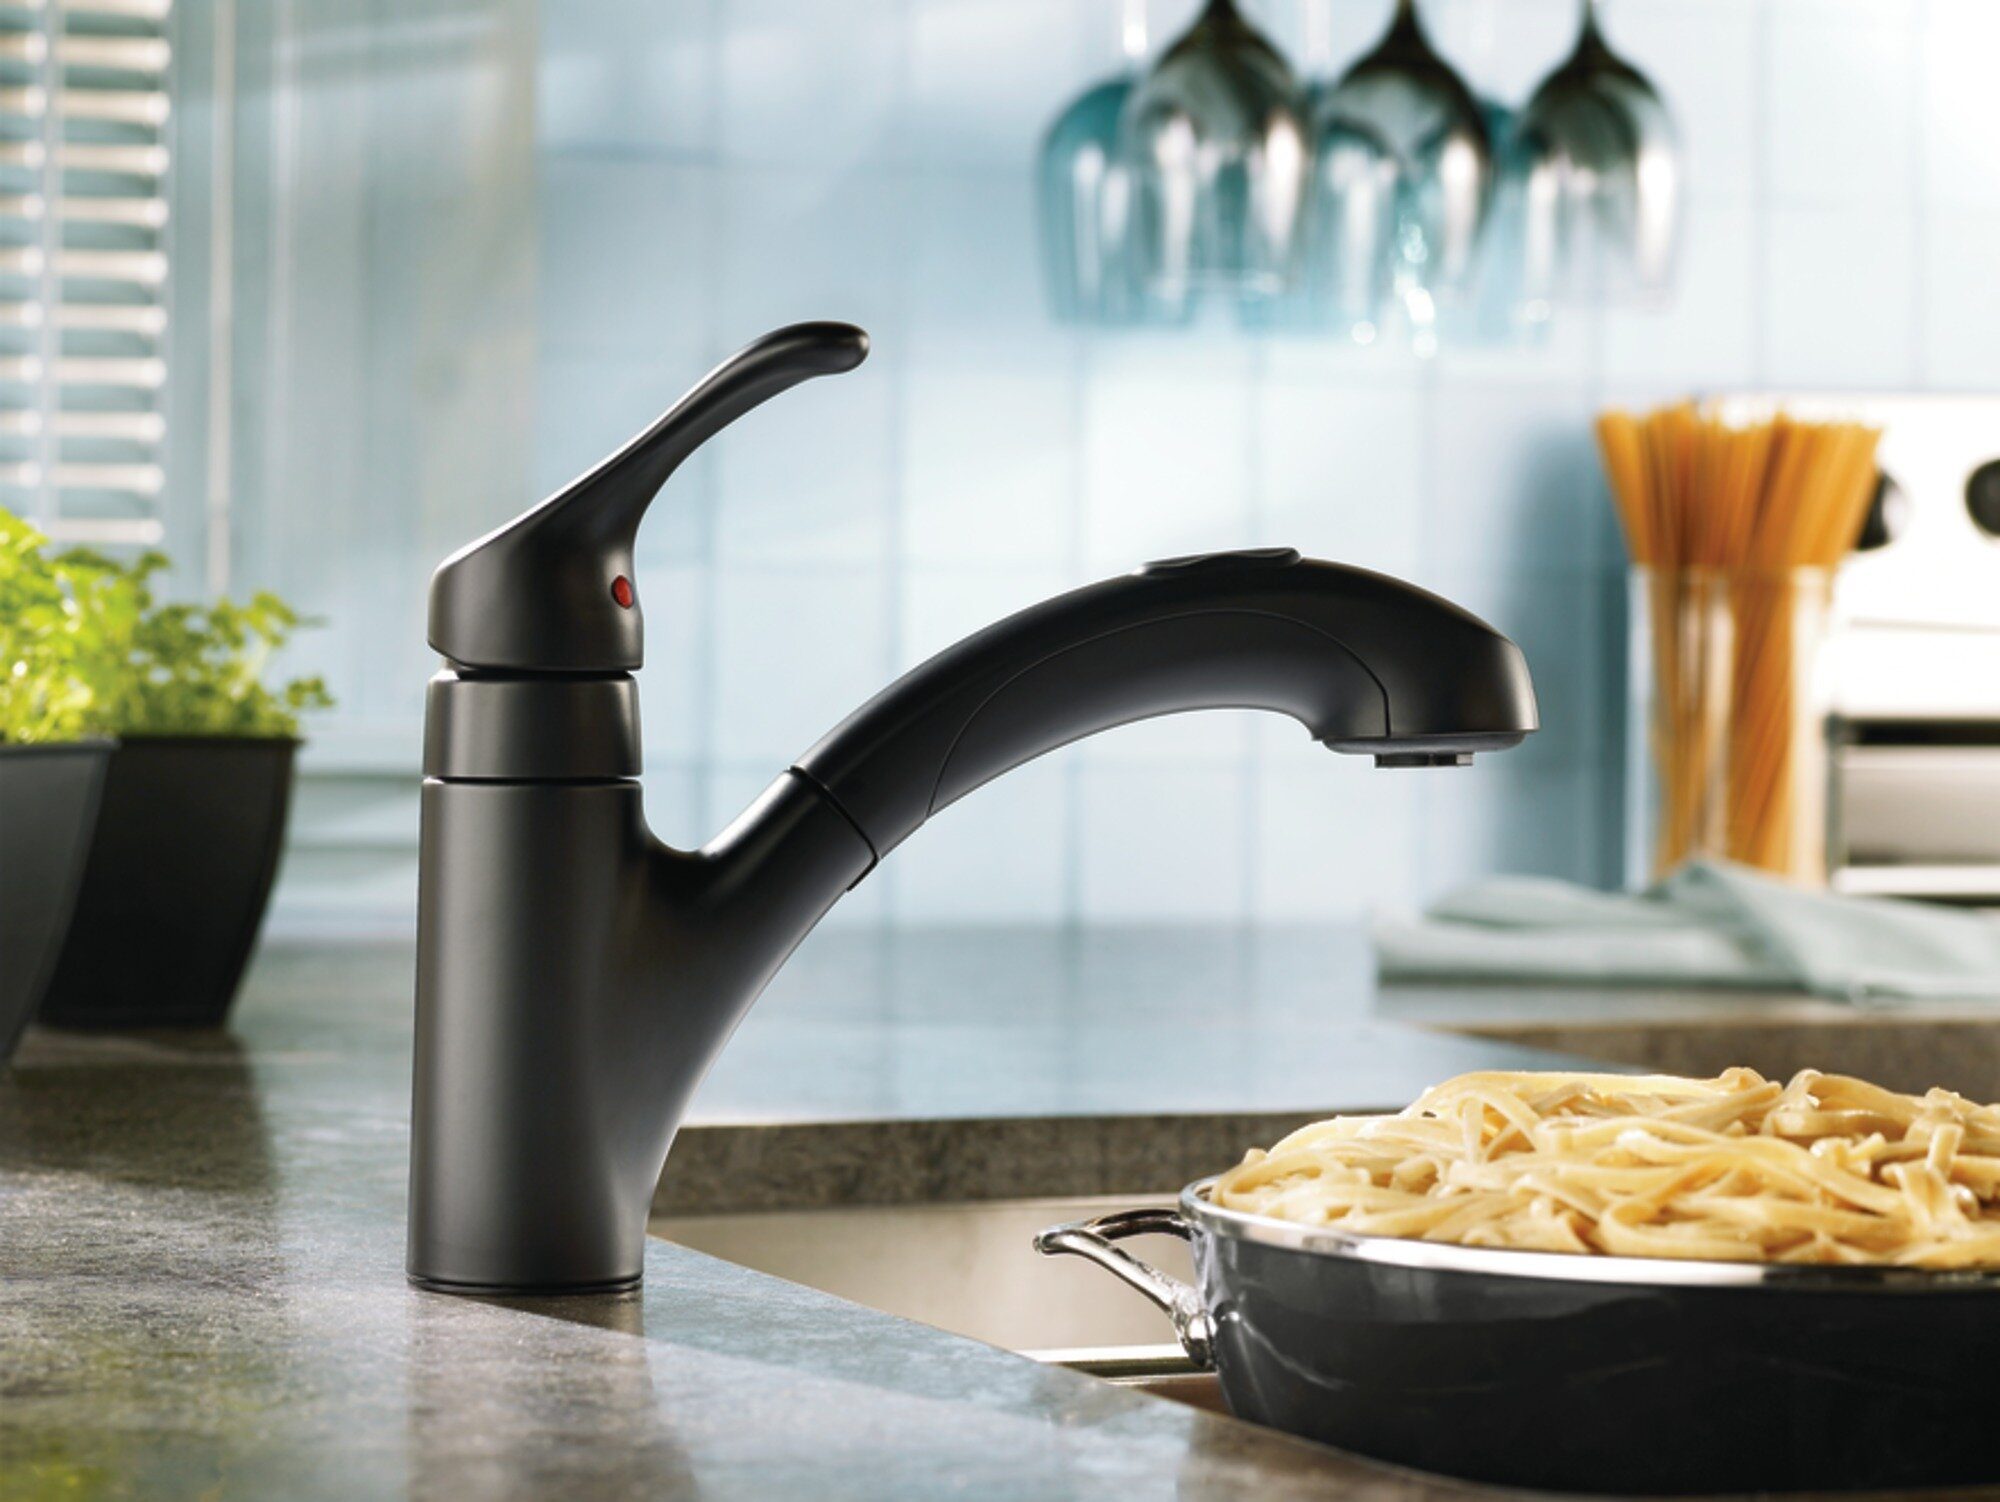 CA87316BL,W Moen Renzo Single Handle Kitchen Faucet with ...